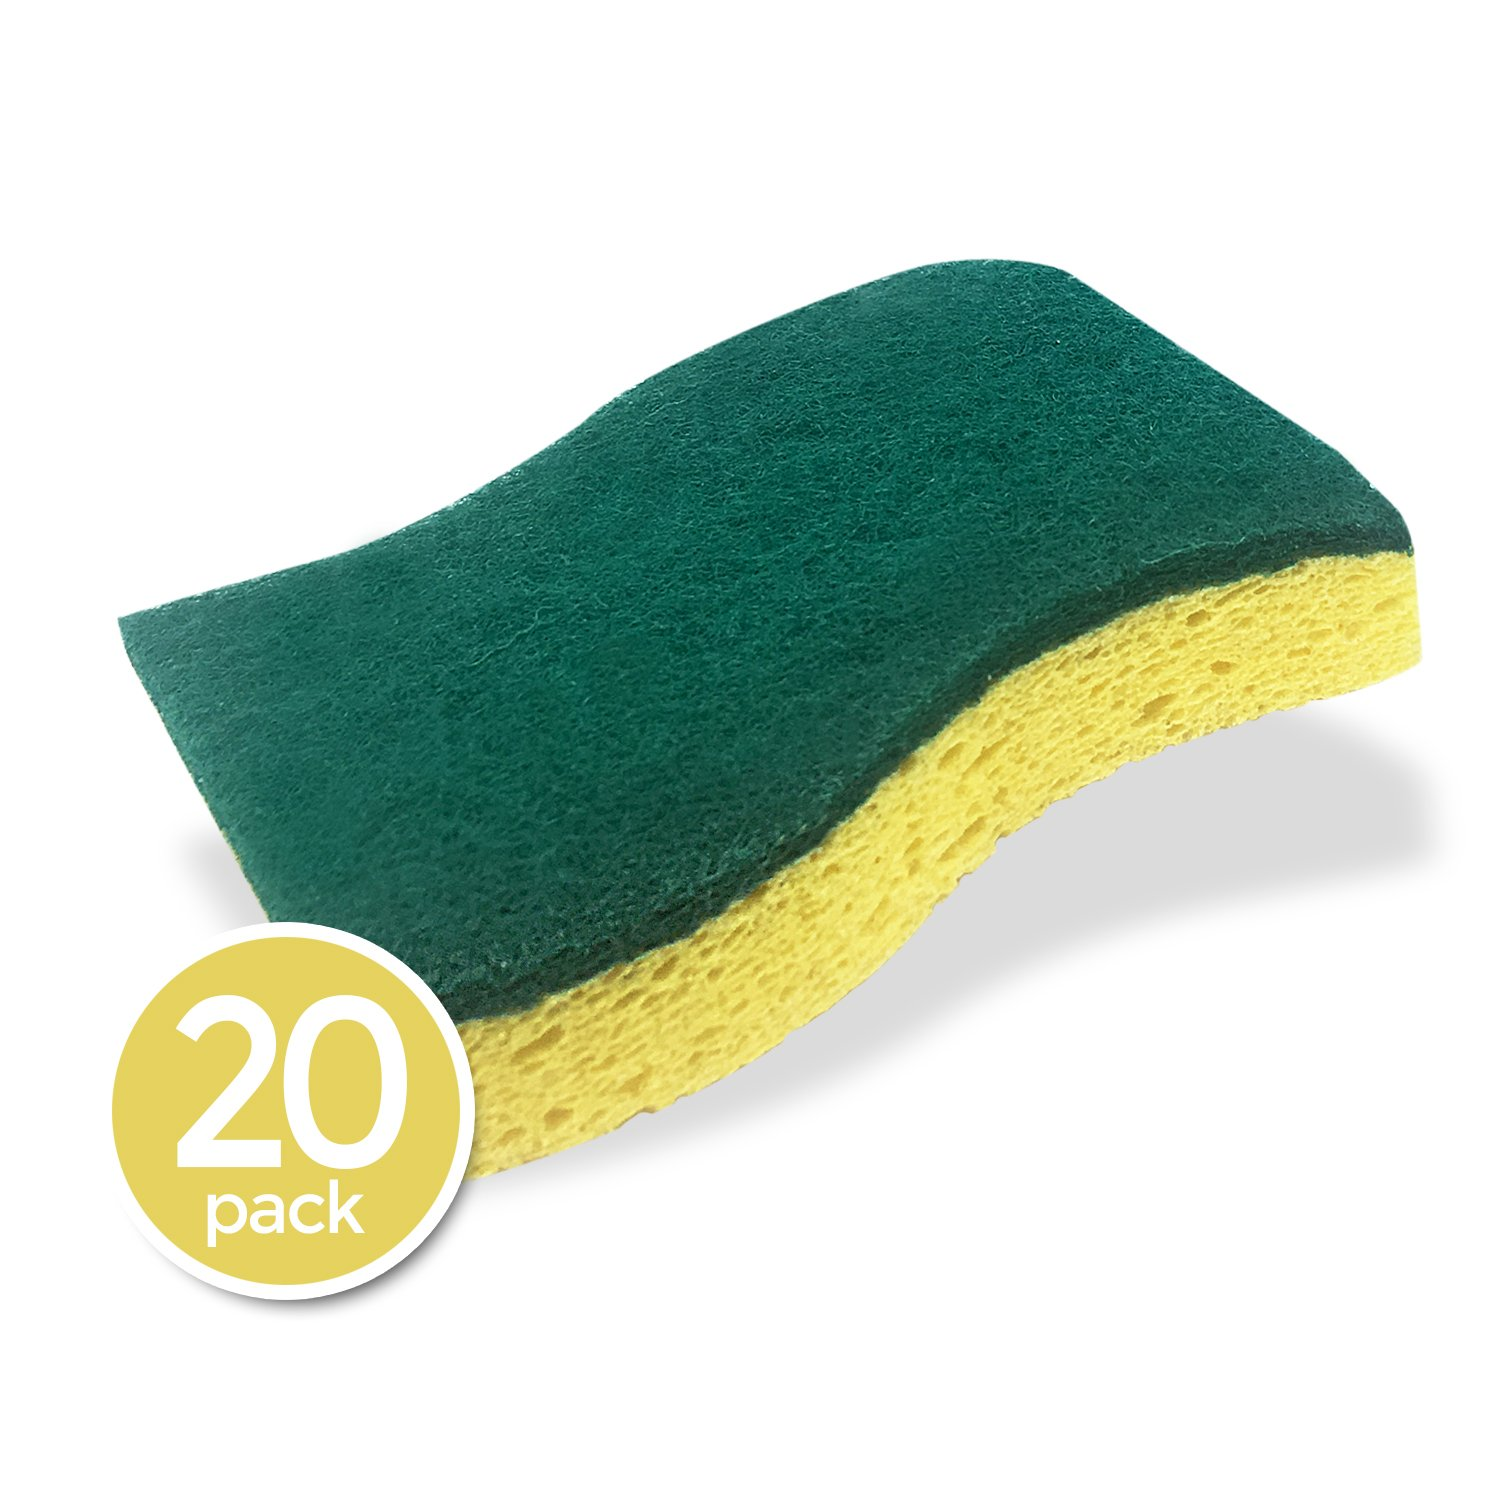 STK 20-Pack Multi-Use Heavy Duty Scrub Sponge - Odor Reduction Technology - Viscose Sponges - 100% Biodegradable & Eco Friendly - Kitchen-Bathroom - Car - Individually Wrapped by STK